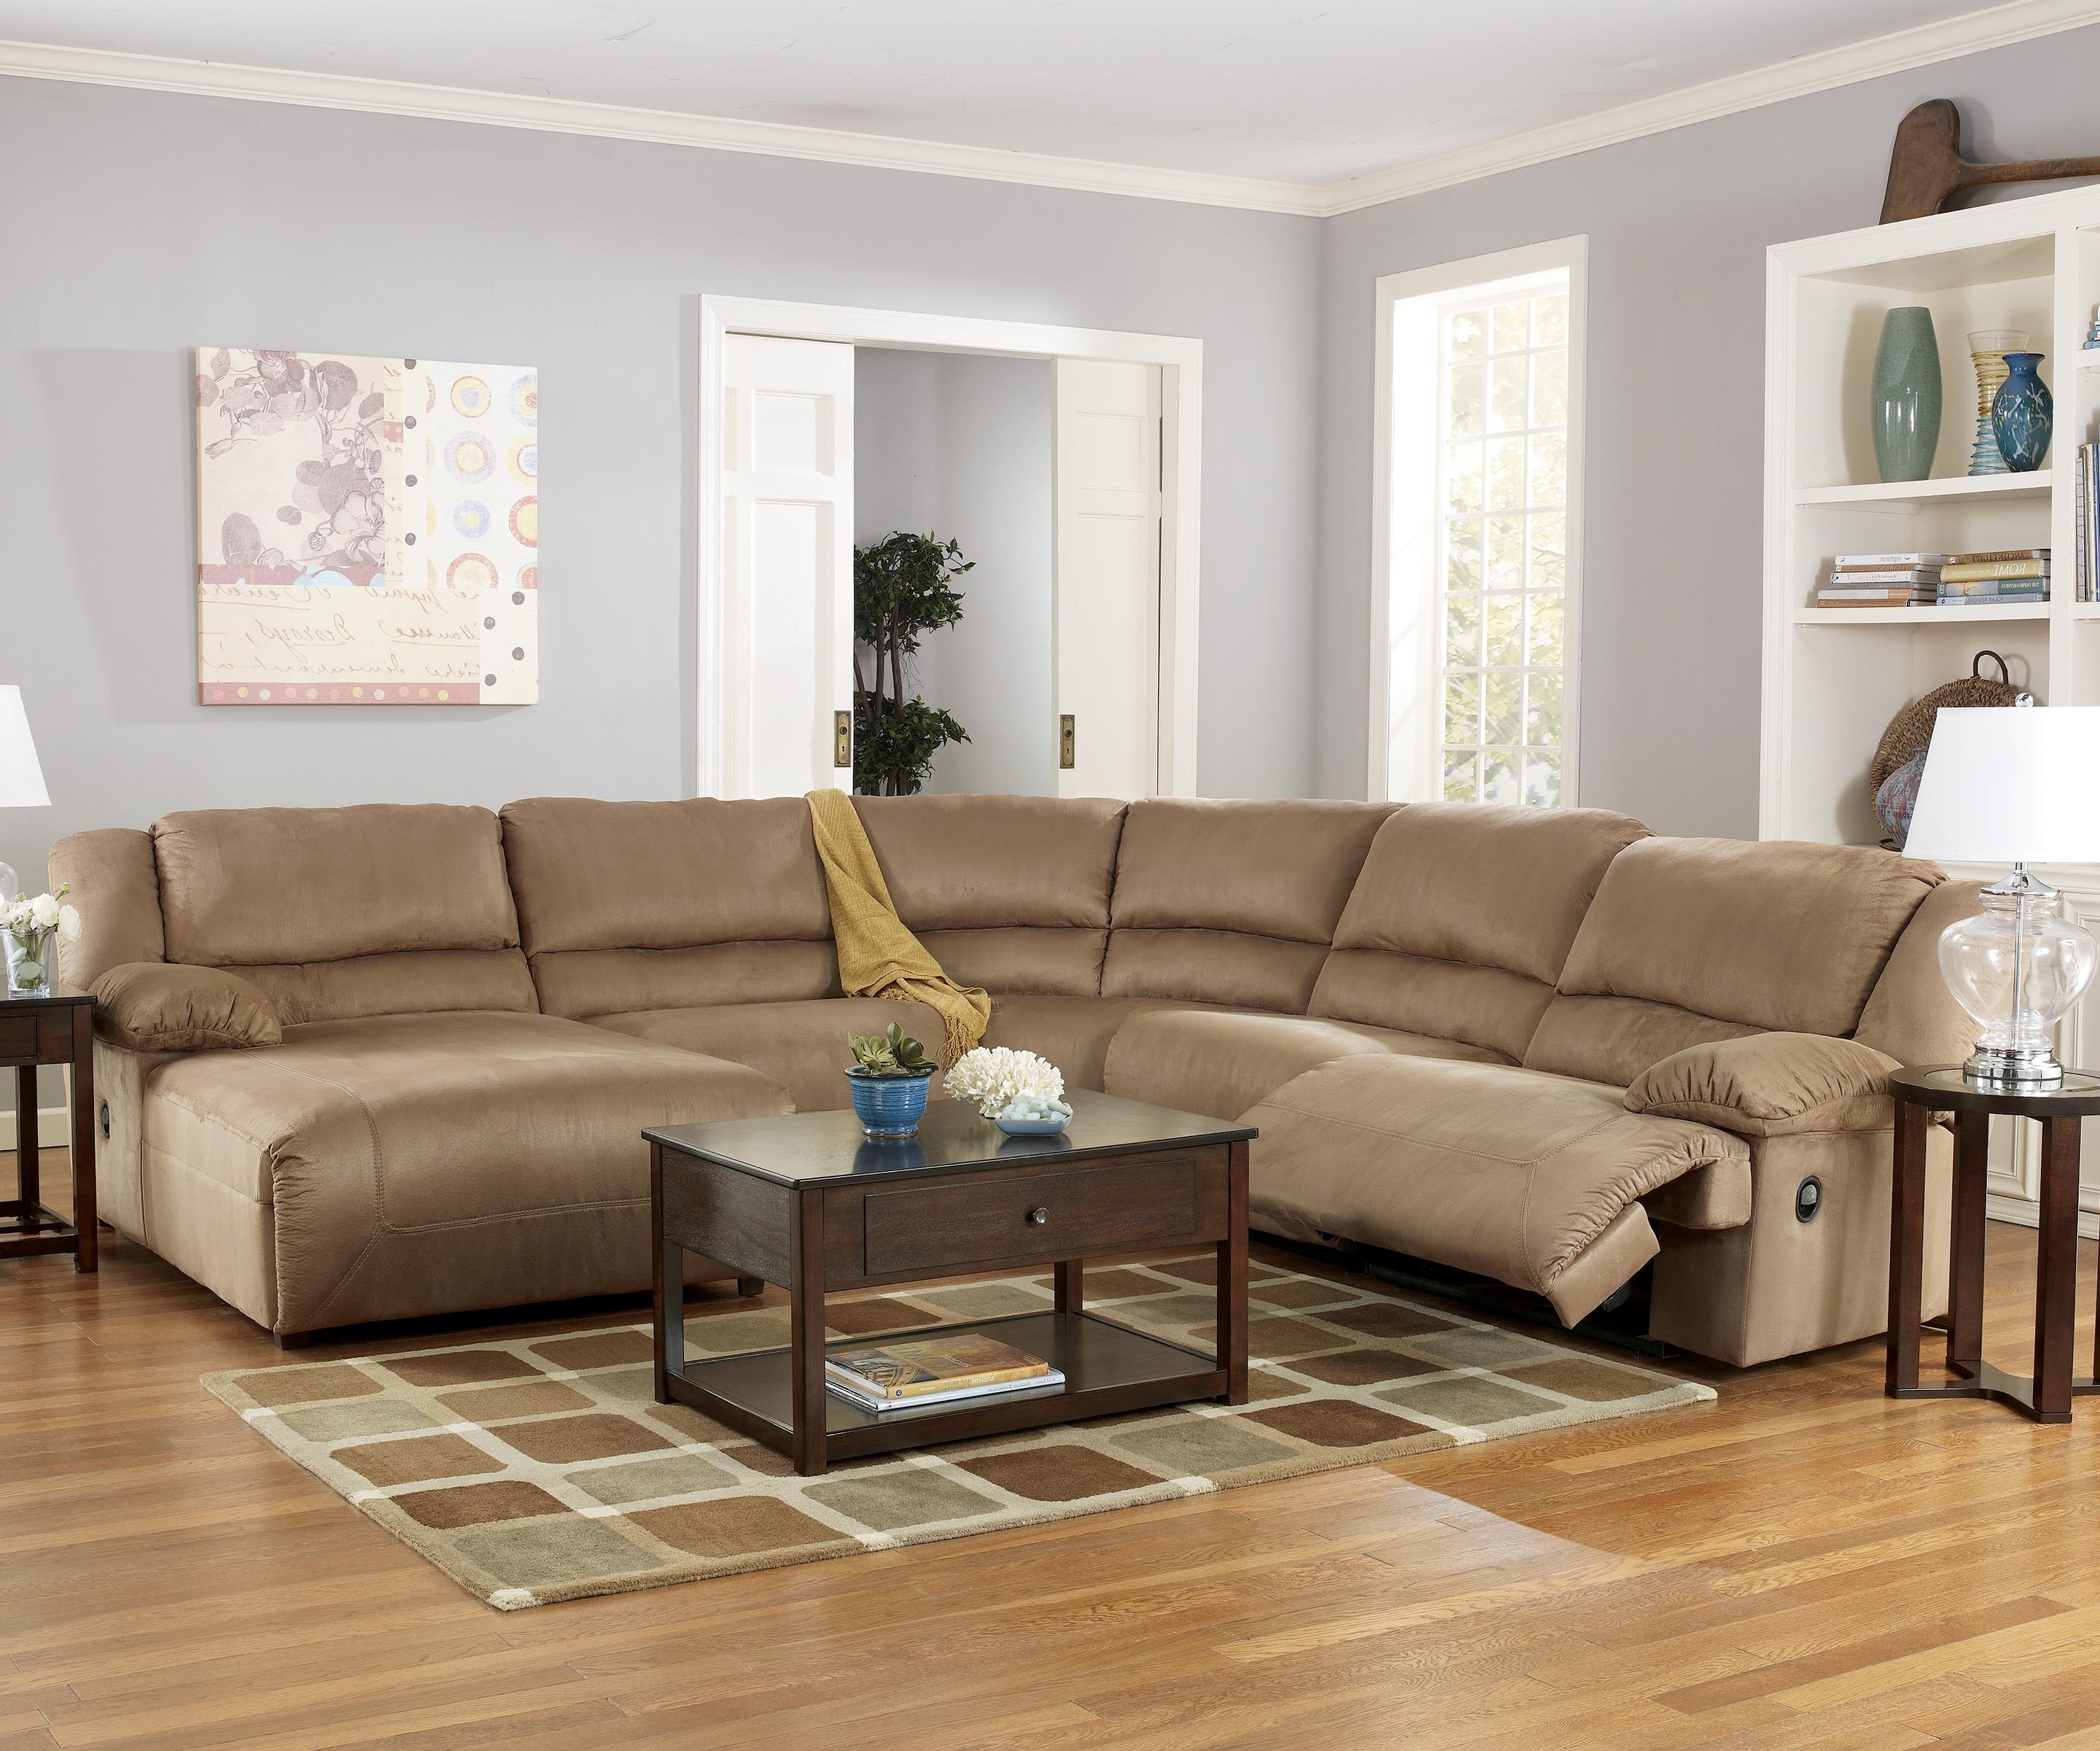 Sectional Sofas Under 300 With Regard To Best And Newest Orlando Sectional Sofas (View 14 of 15)